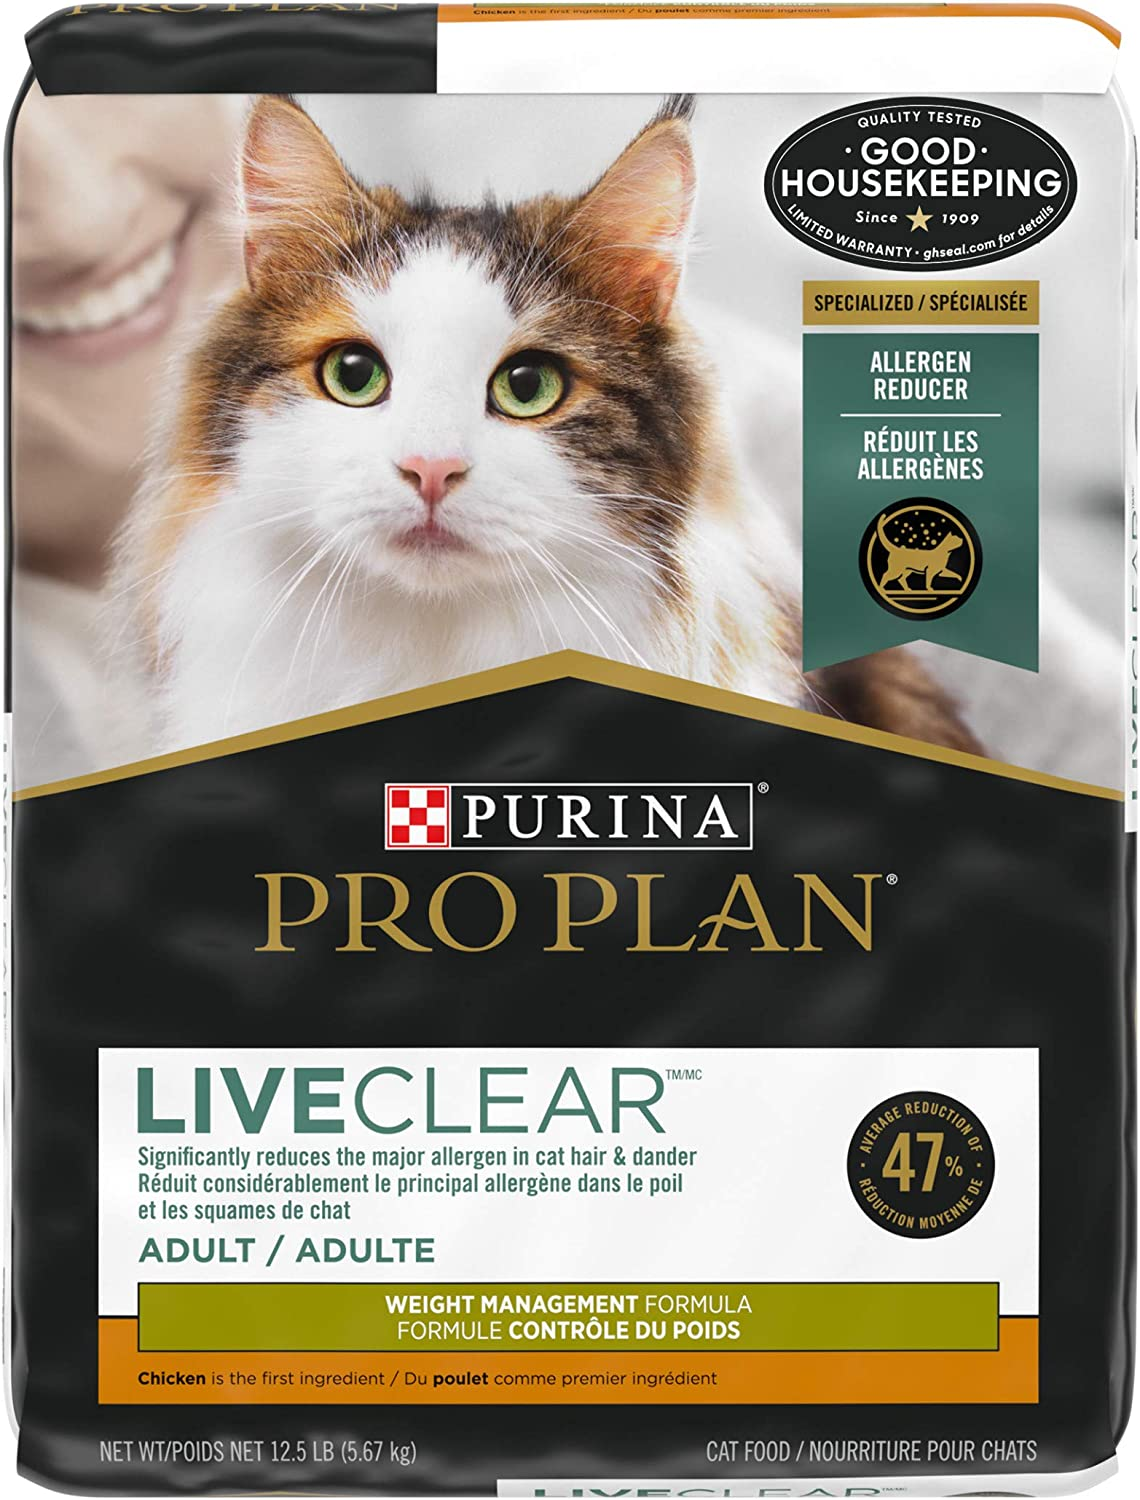 Purina Pro Plan LIVECLEAR Adult Weight Management Formula Dry Cat Food - 12.5 lb. Bag